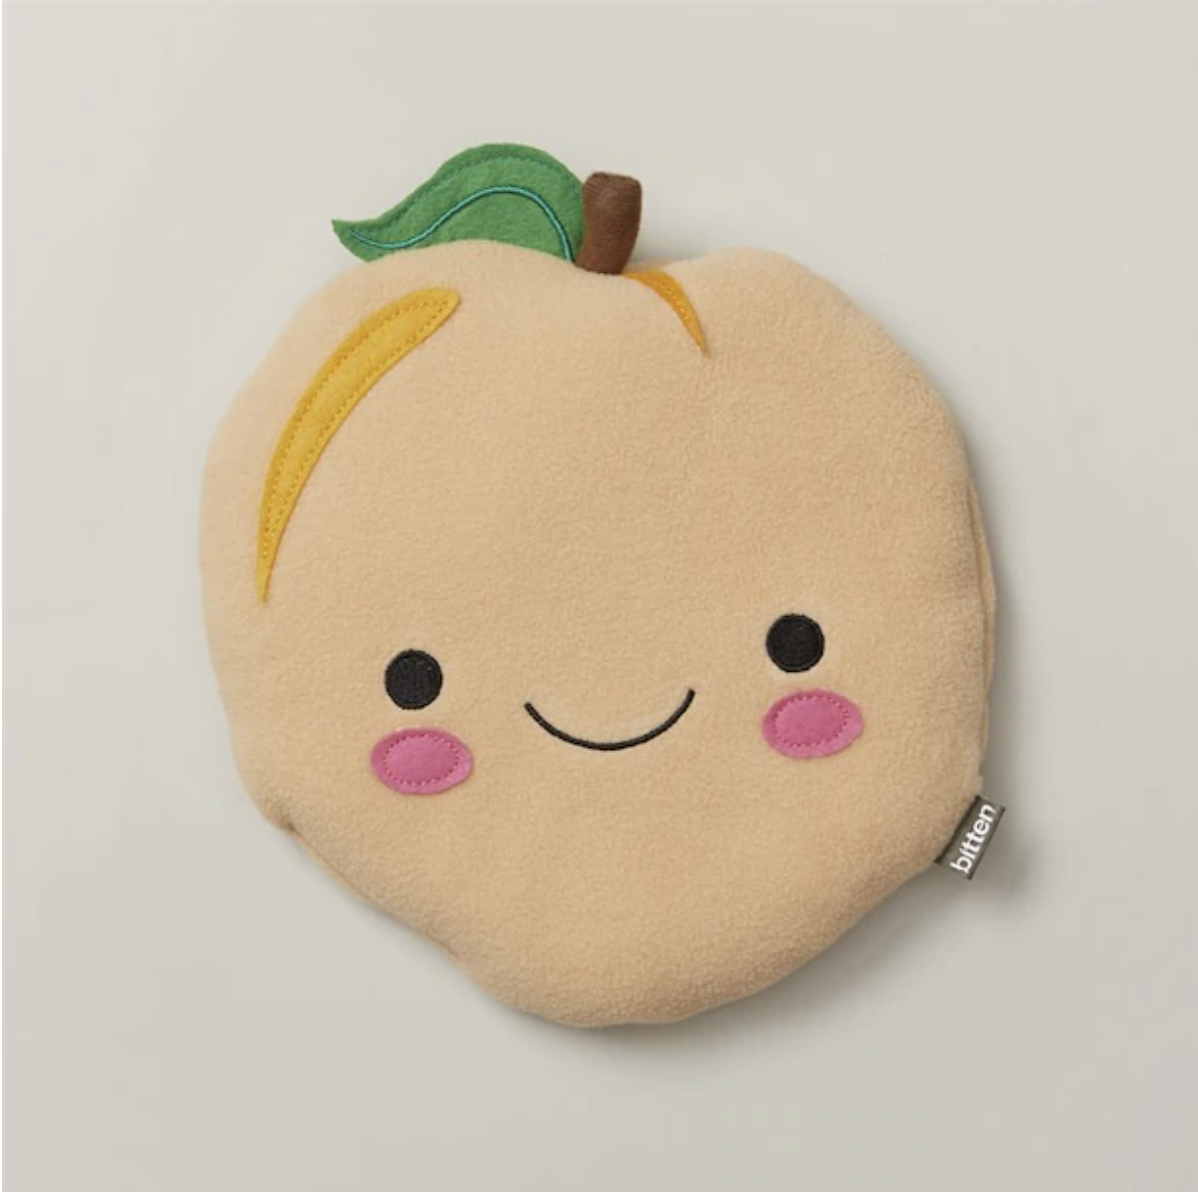 the peach pad smiling